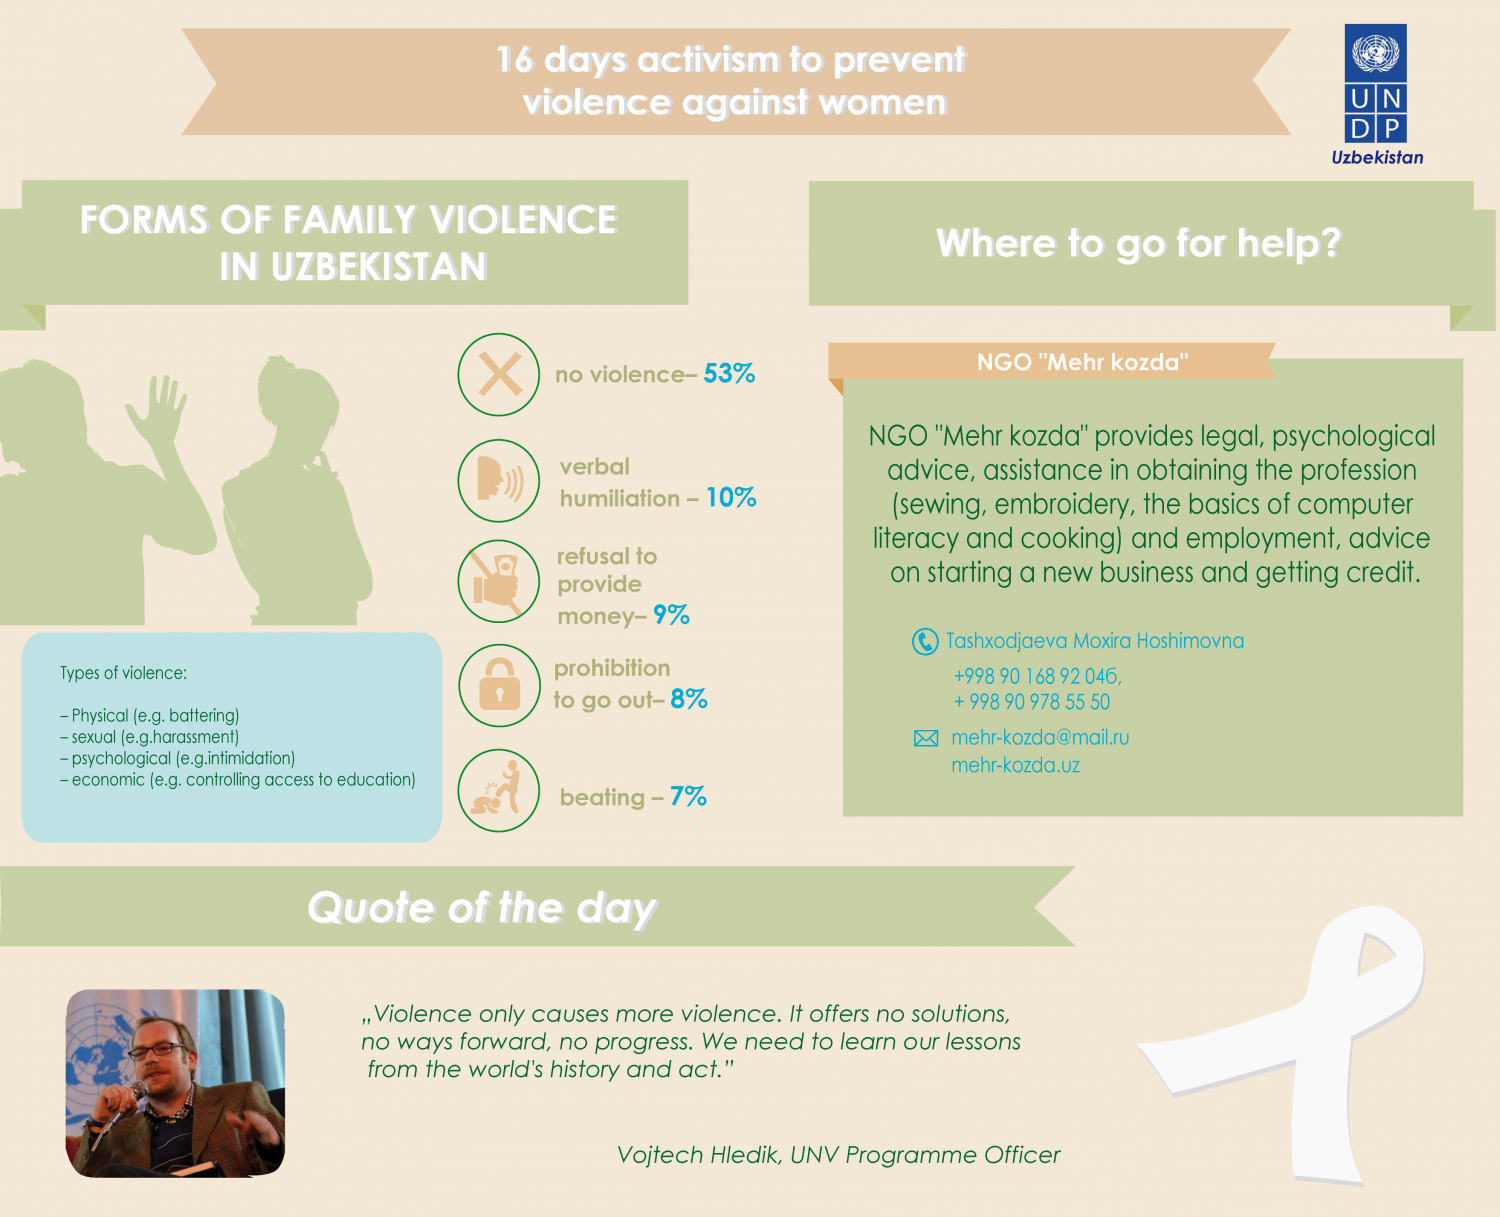 Forms of family violence in Uzbekistan Infographic